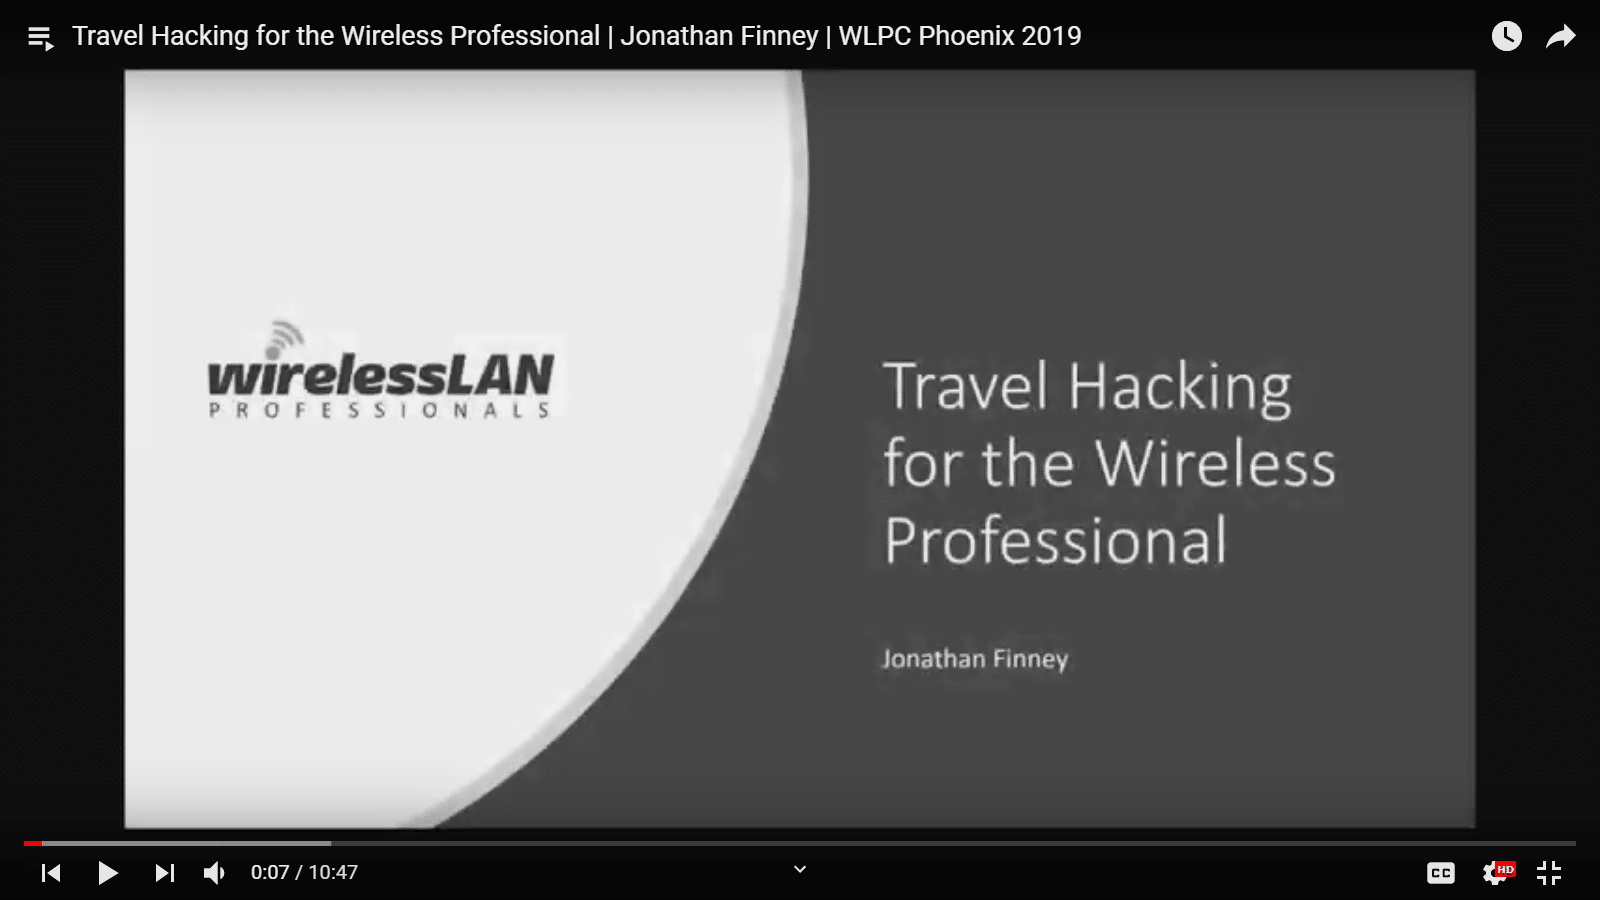 Travel Hacking for the Wireless Professional | Jonathan Finney | WLPC Phoenix 2019